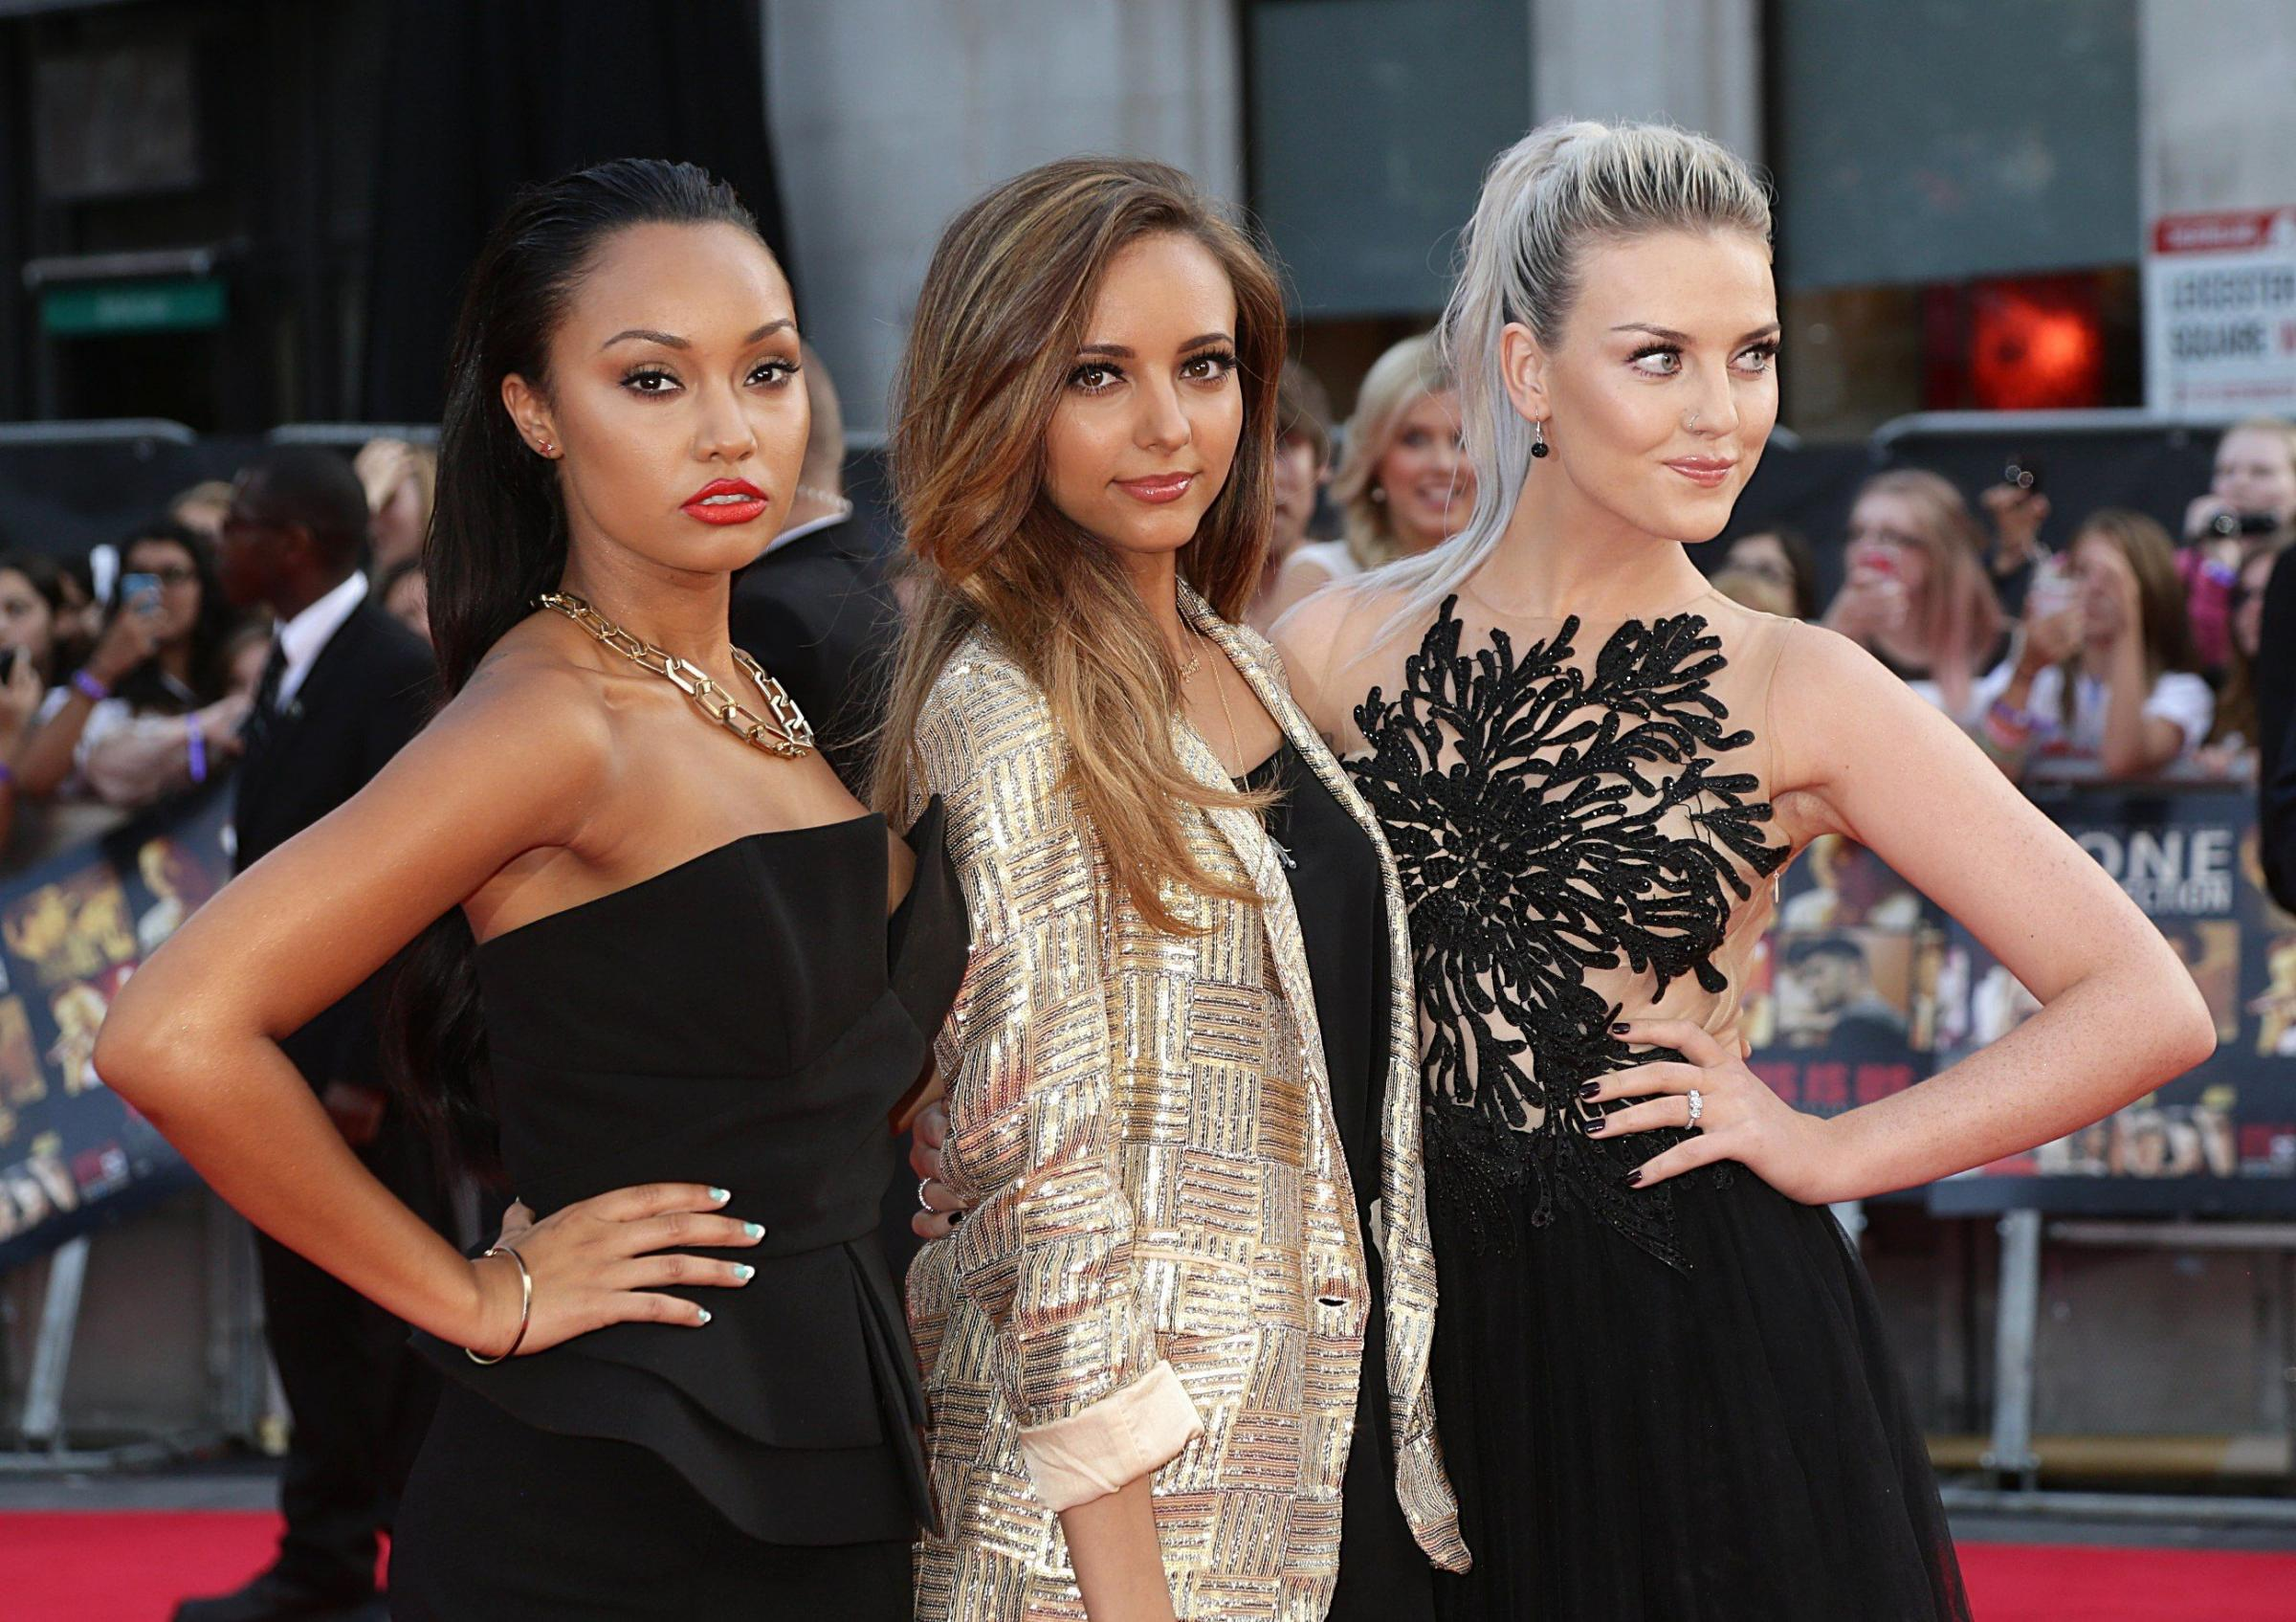 Perrie shows off the engagement at the One Direction premier